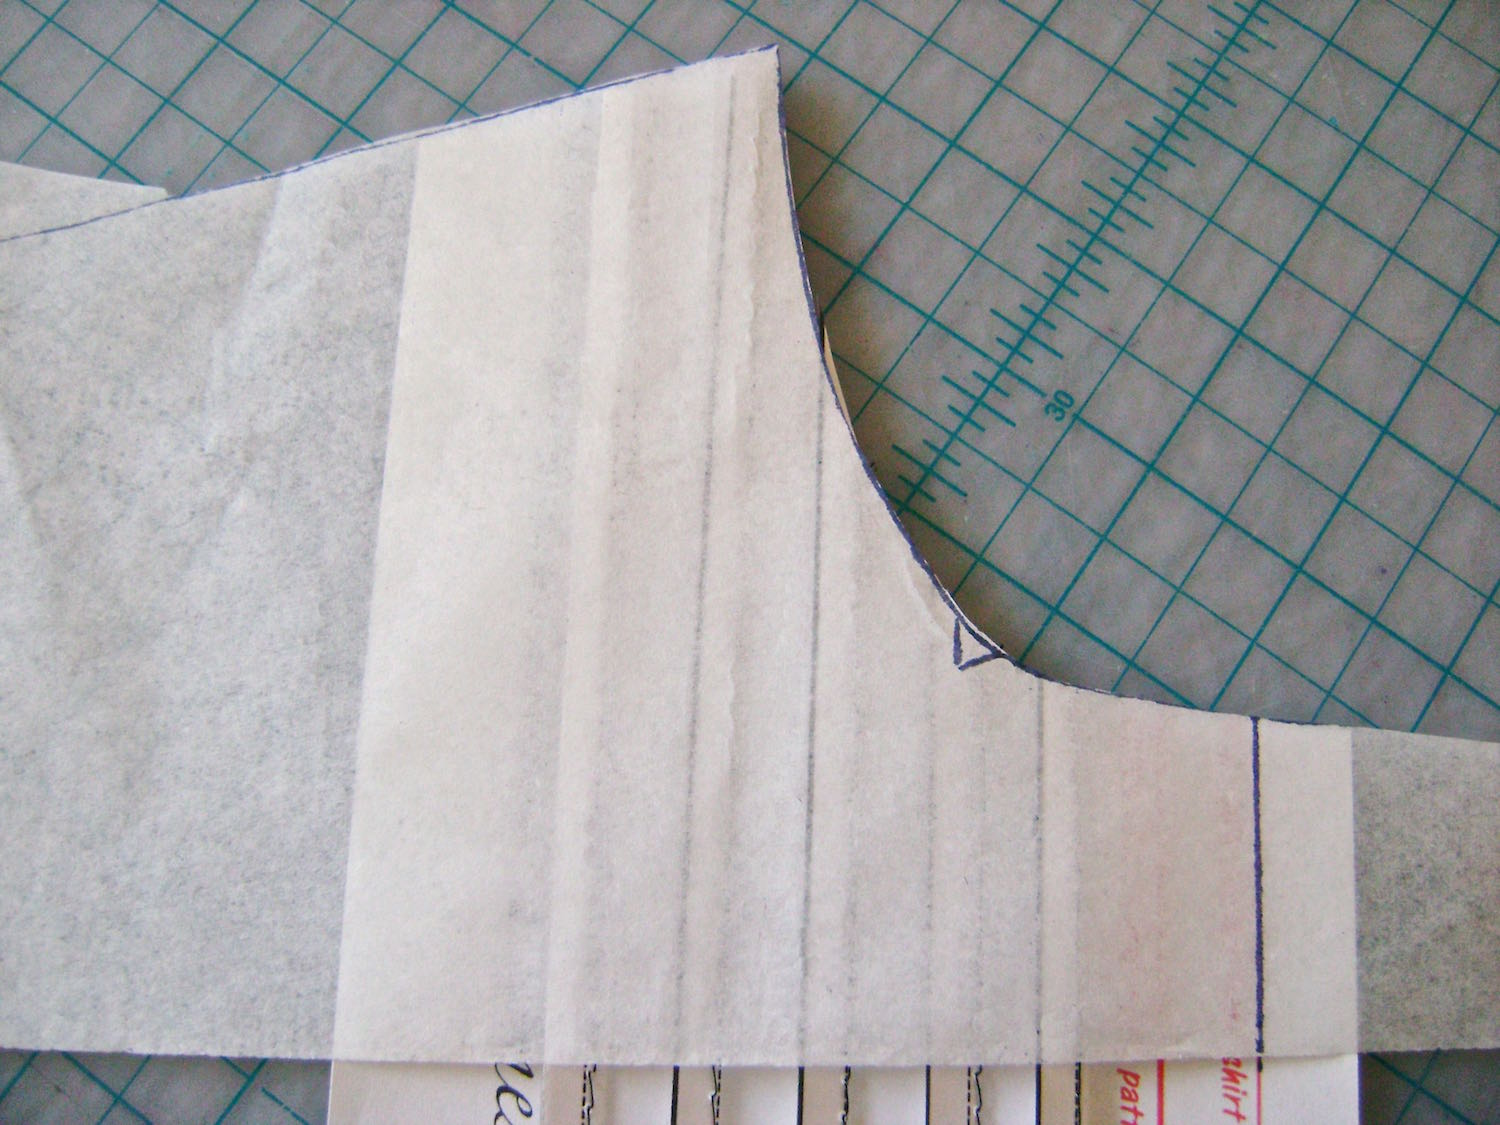 step 6 - Cut the template to match.  Be sure to transfer all markings.